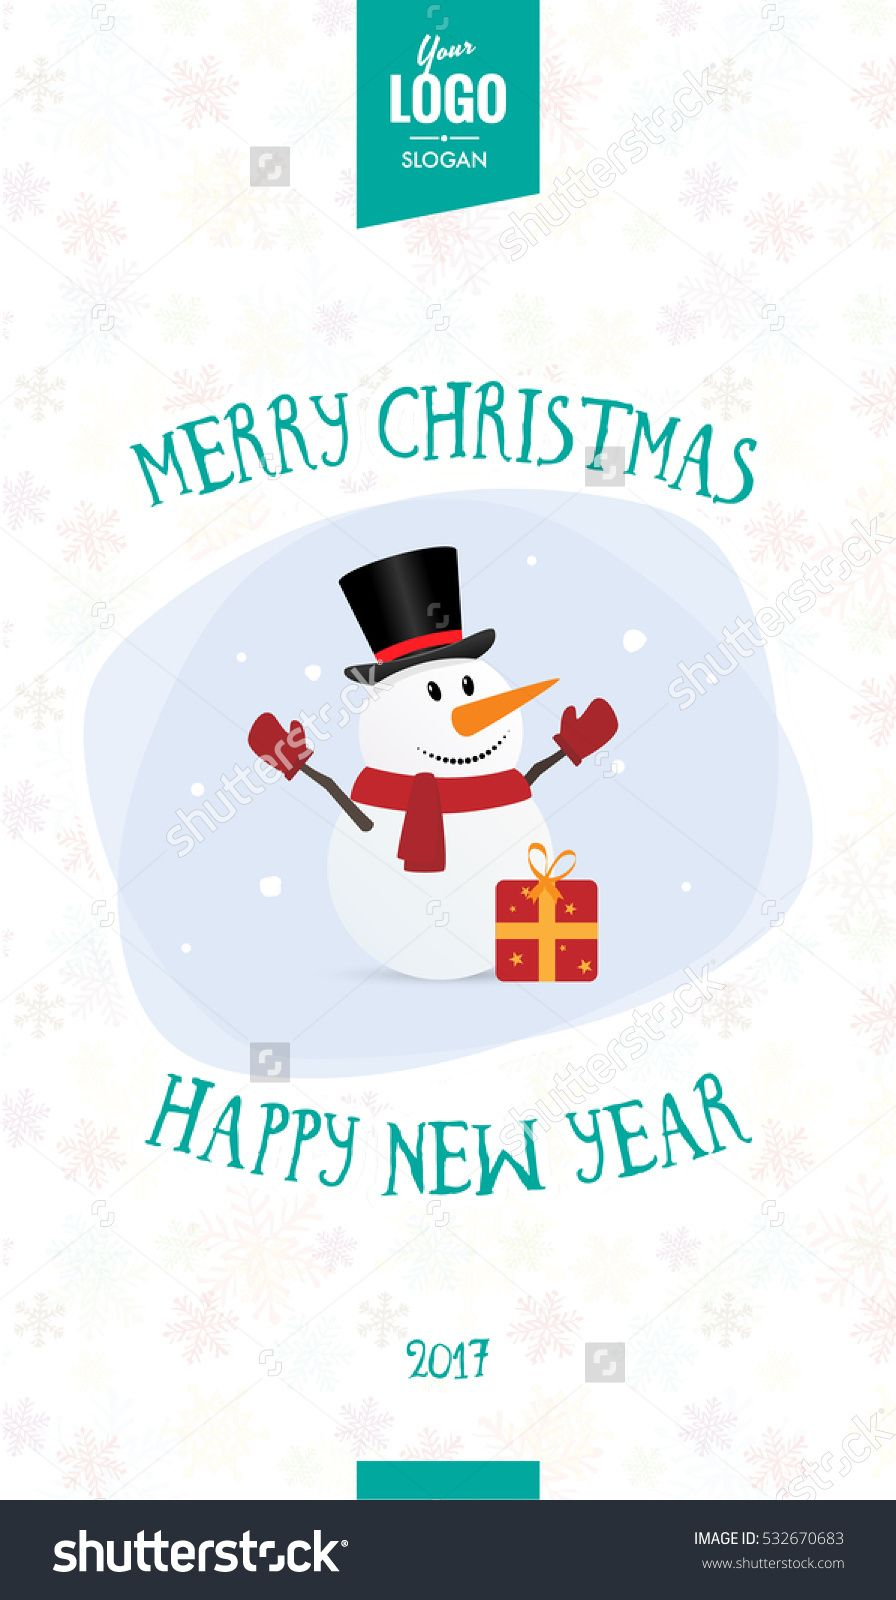 Merry Christmas And Happy New Year Corporate Greeting Card Snowman